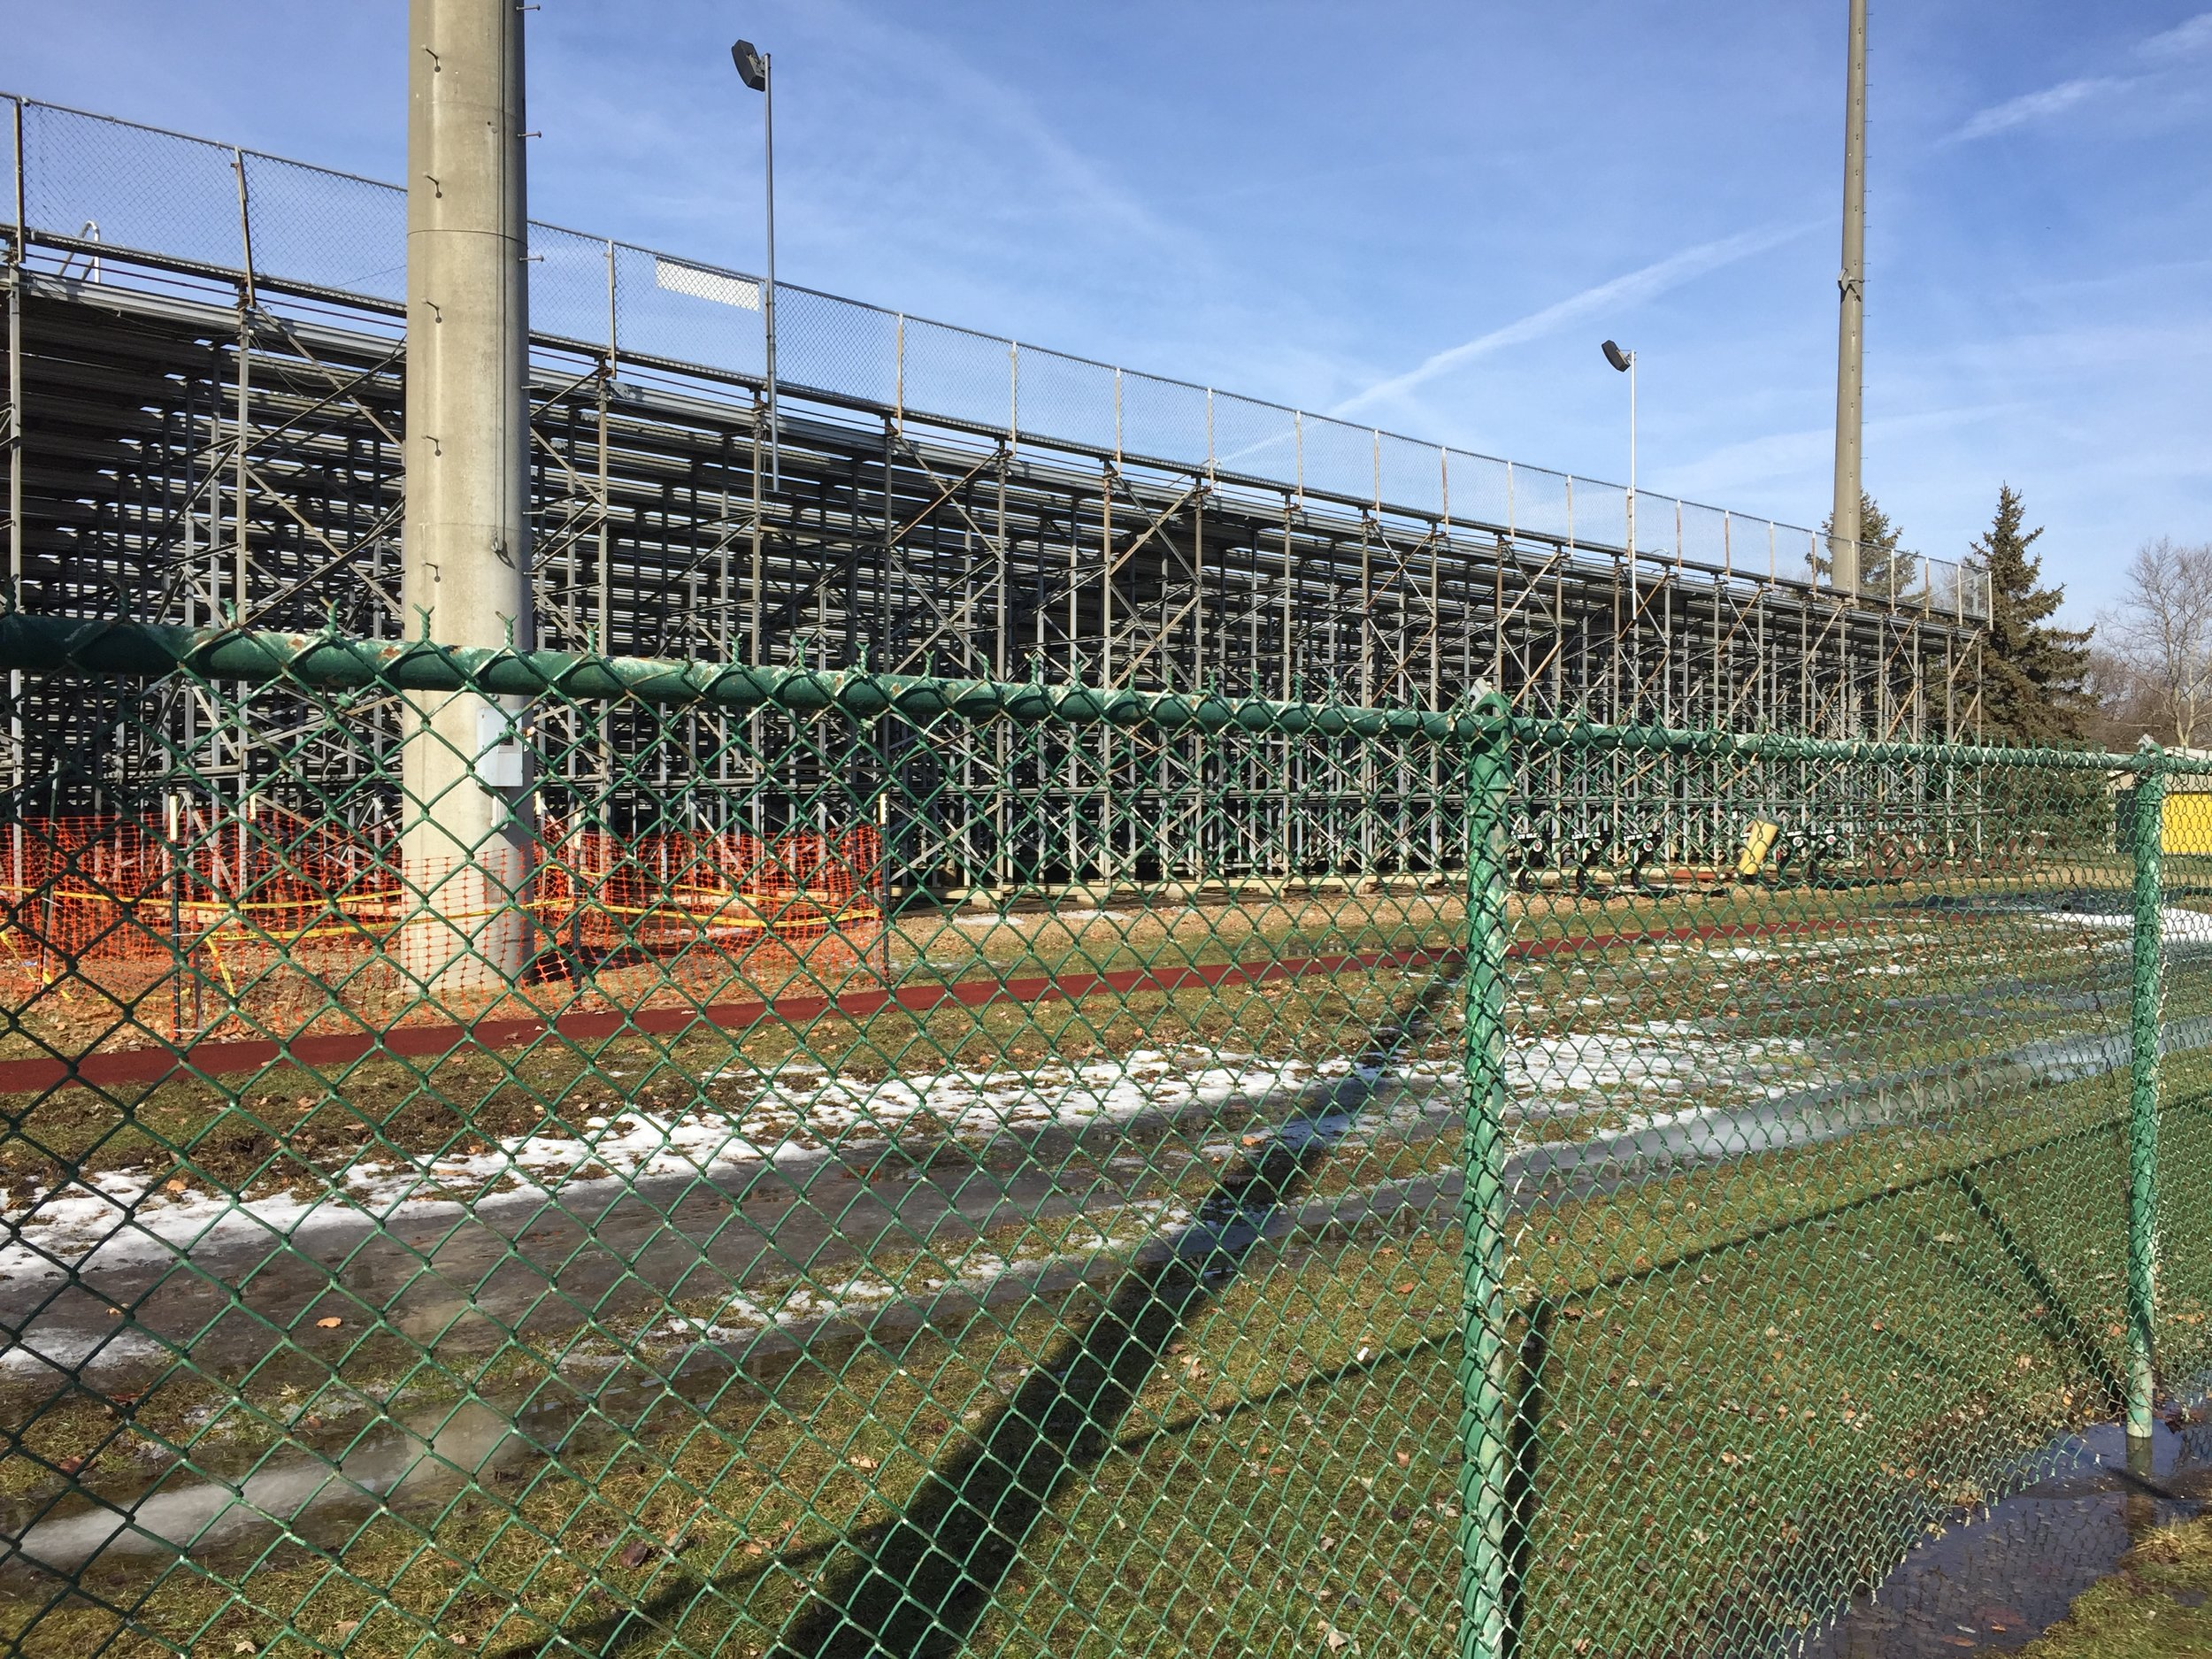 New tower site near the visitor bleachers.